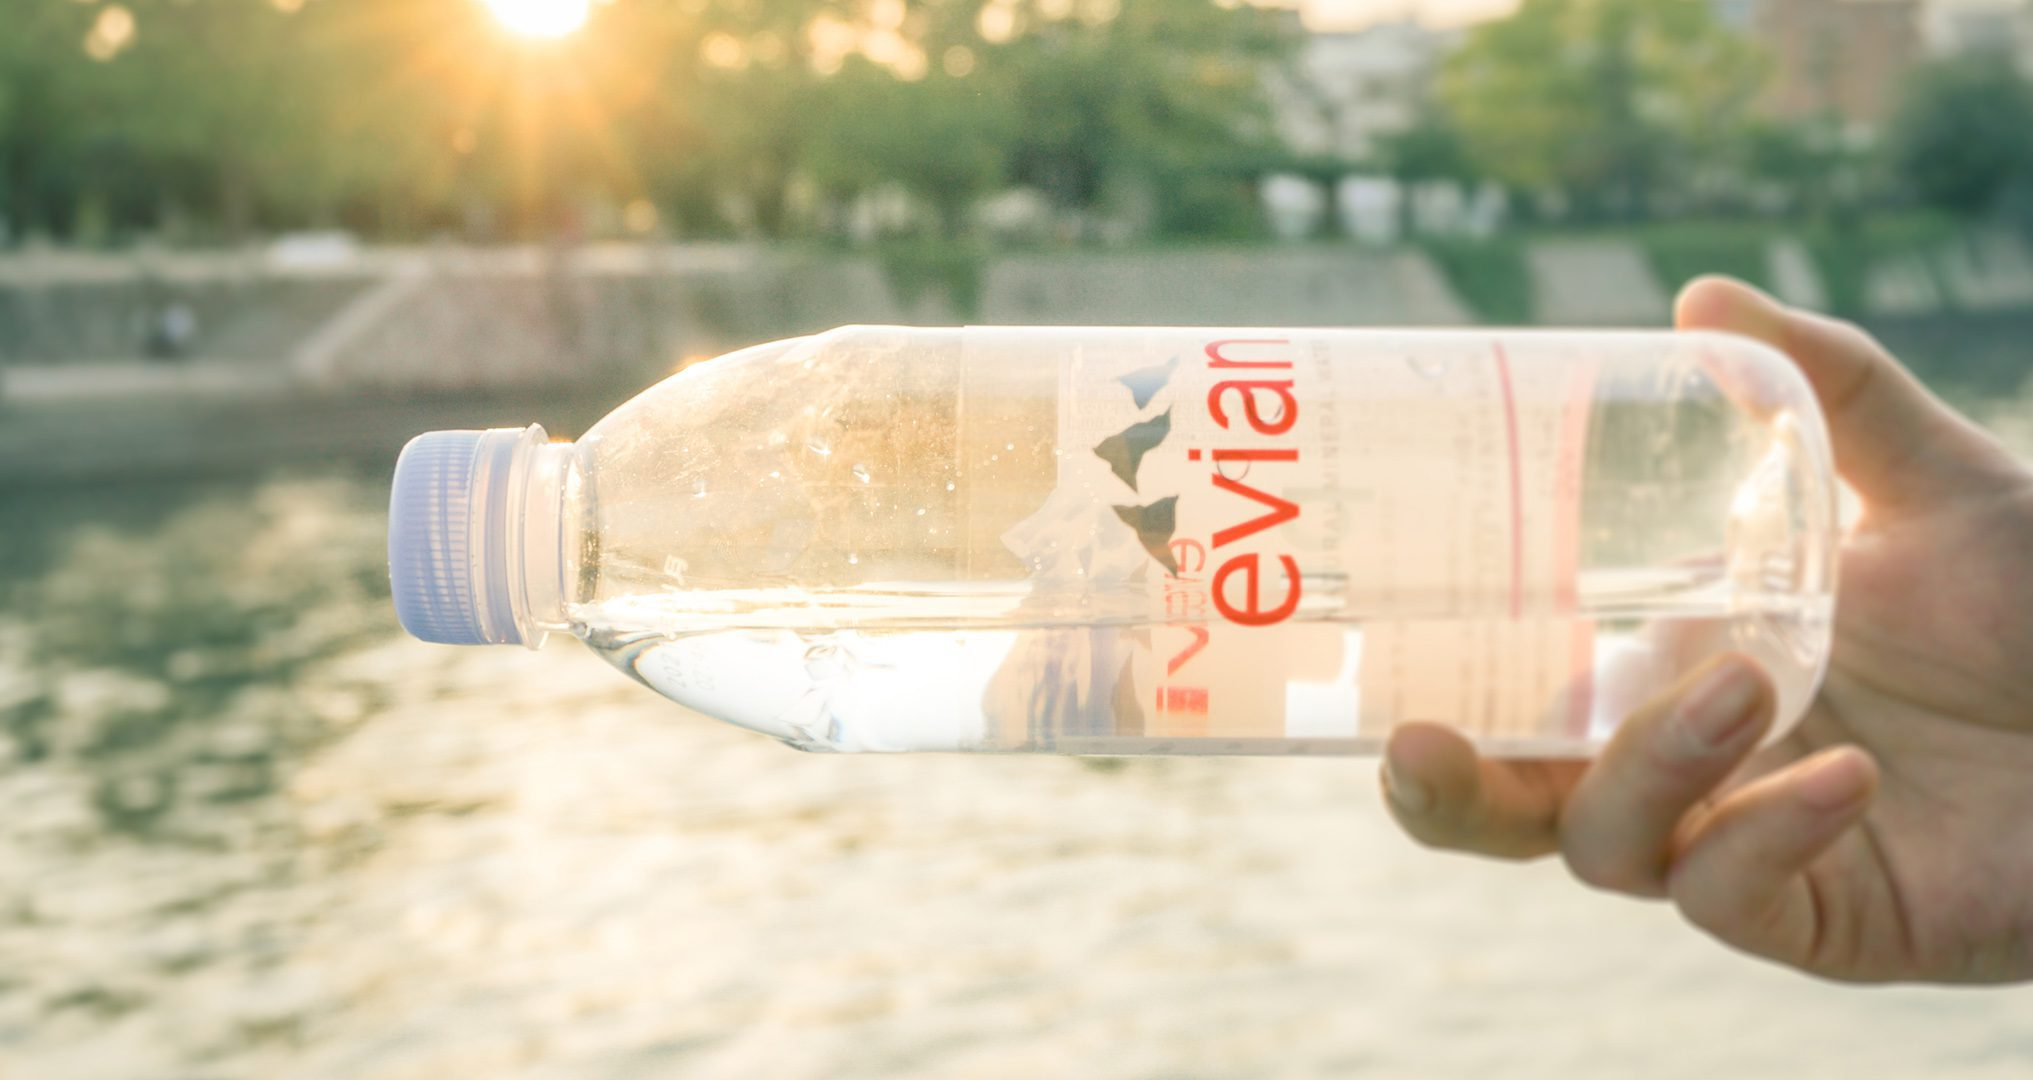 Evian bottled water being held by person